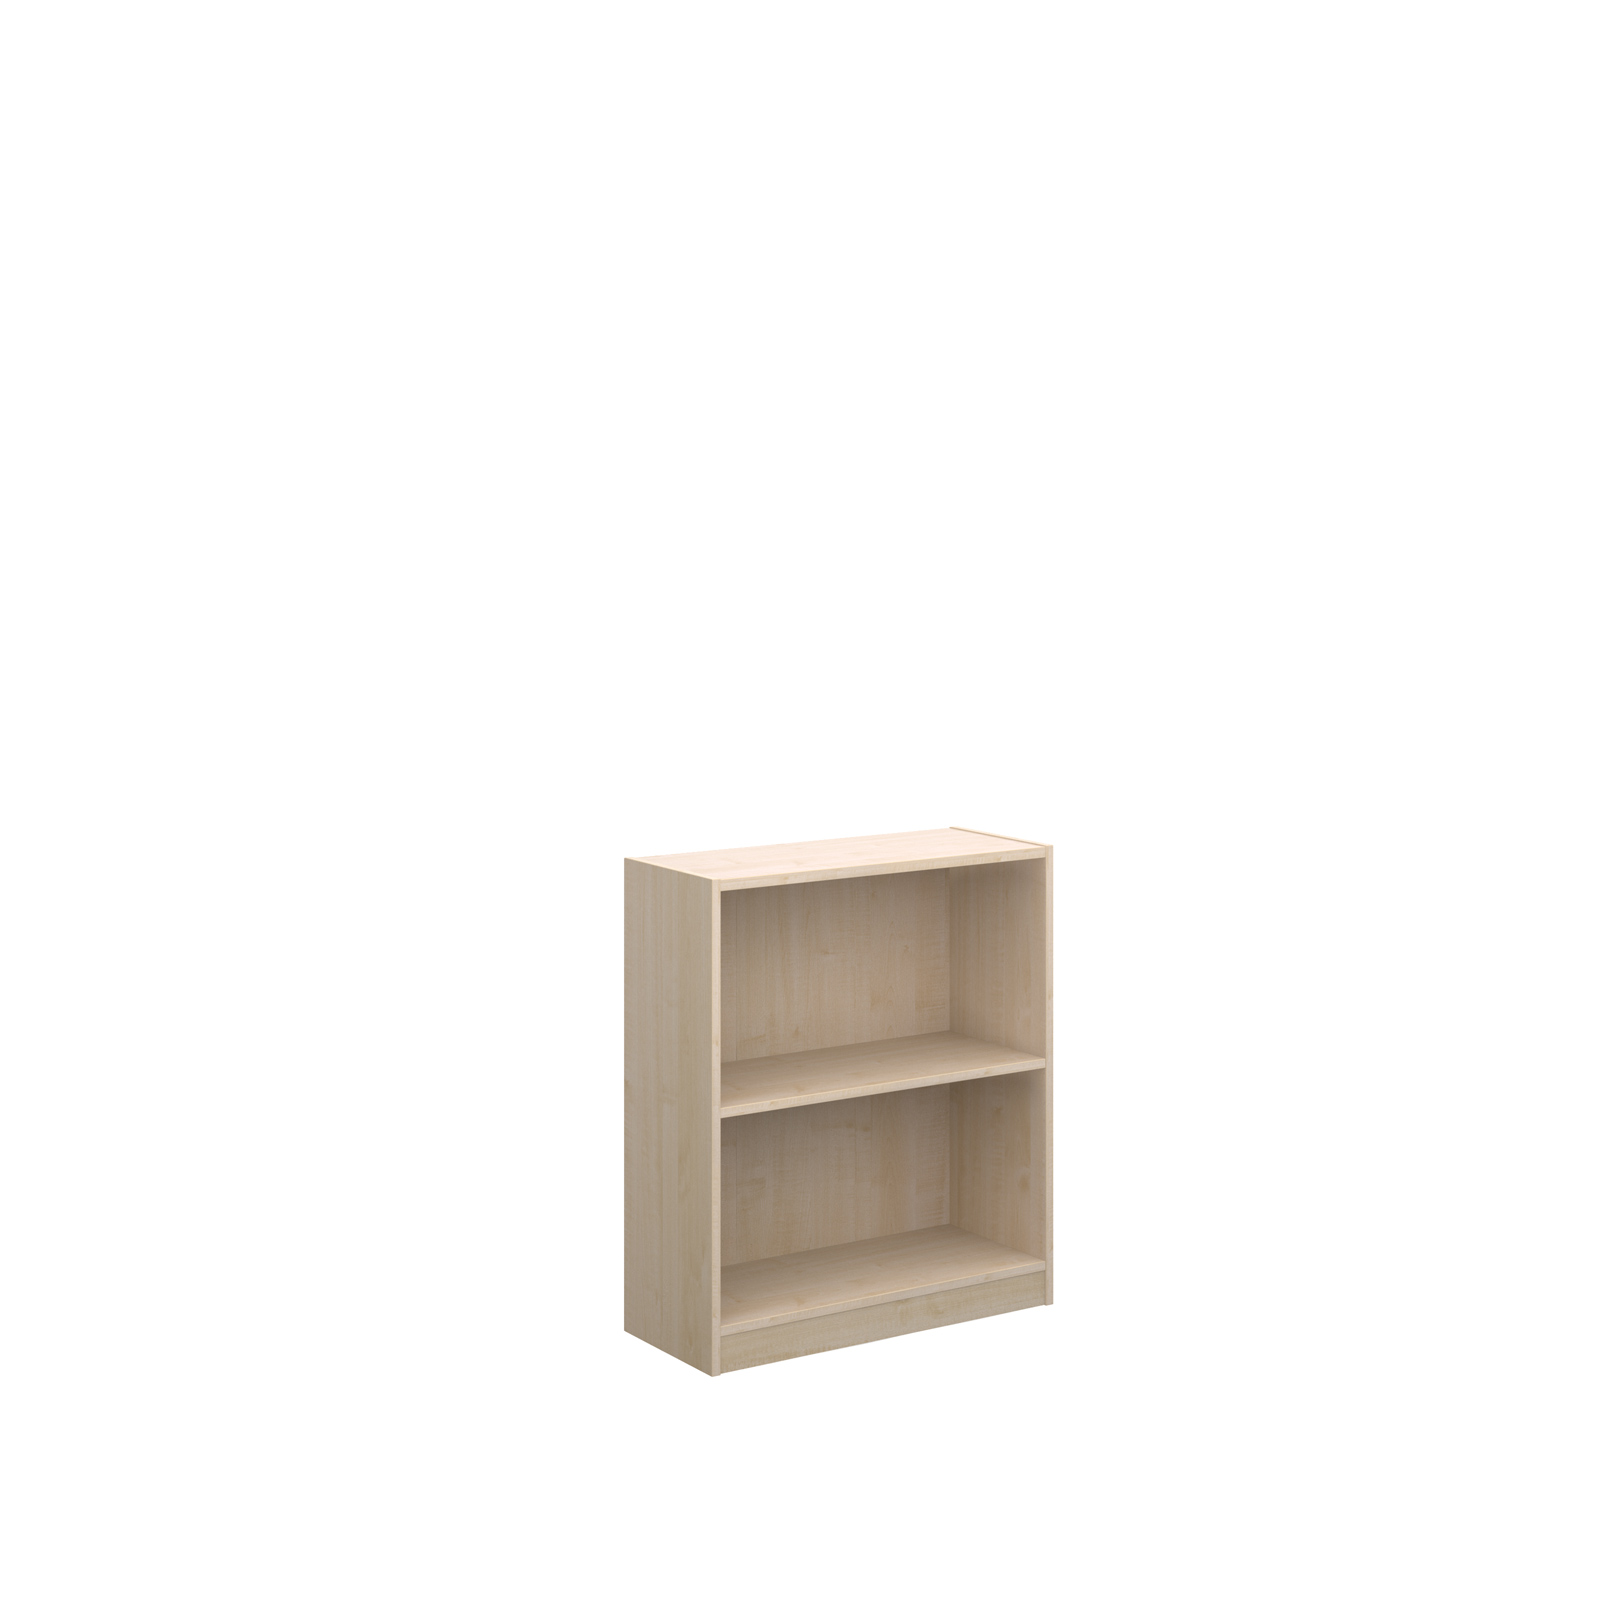 Economy bookcase 720mm high with 1 shelf - maple